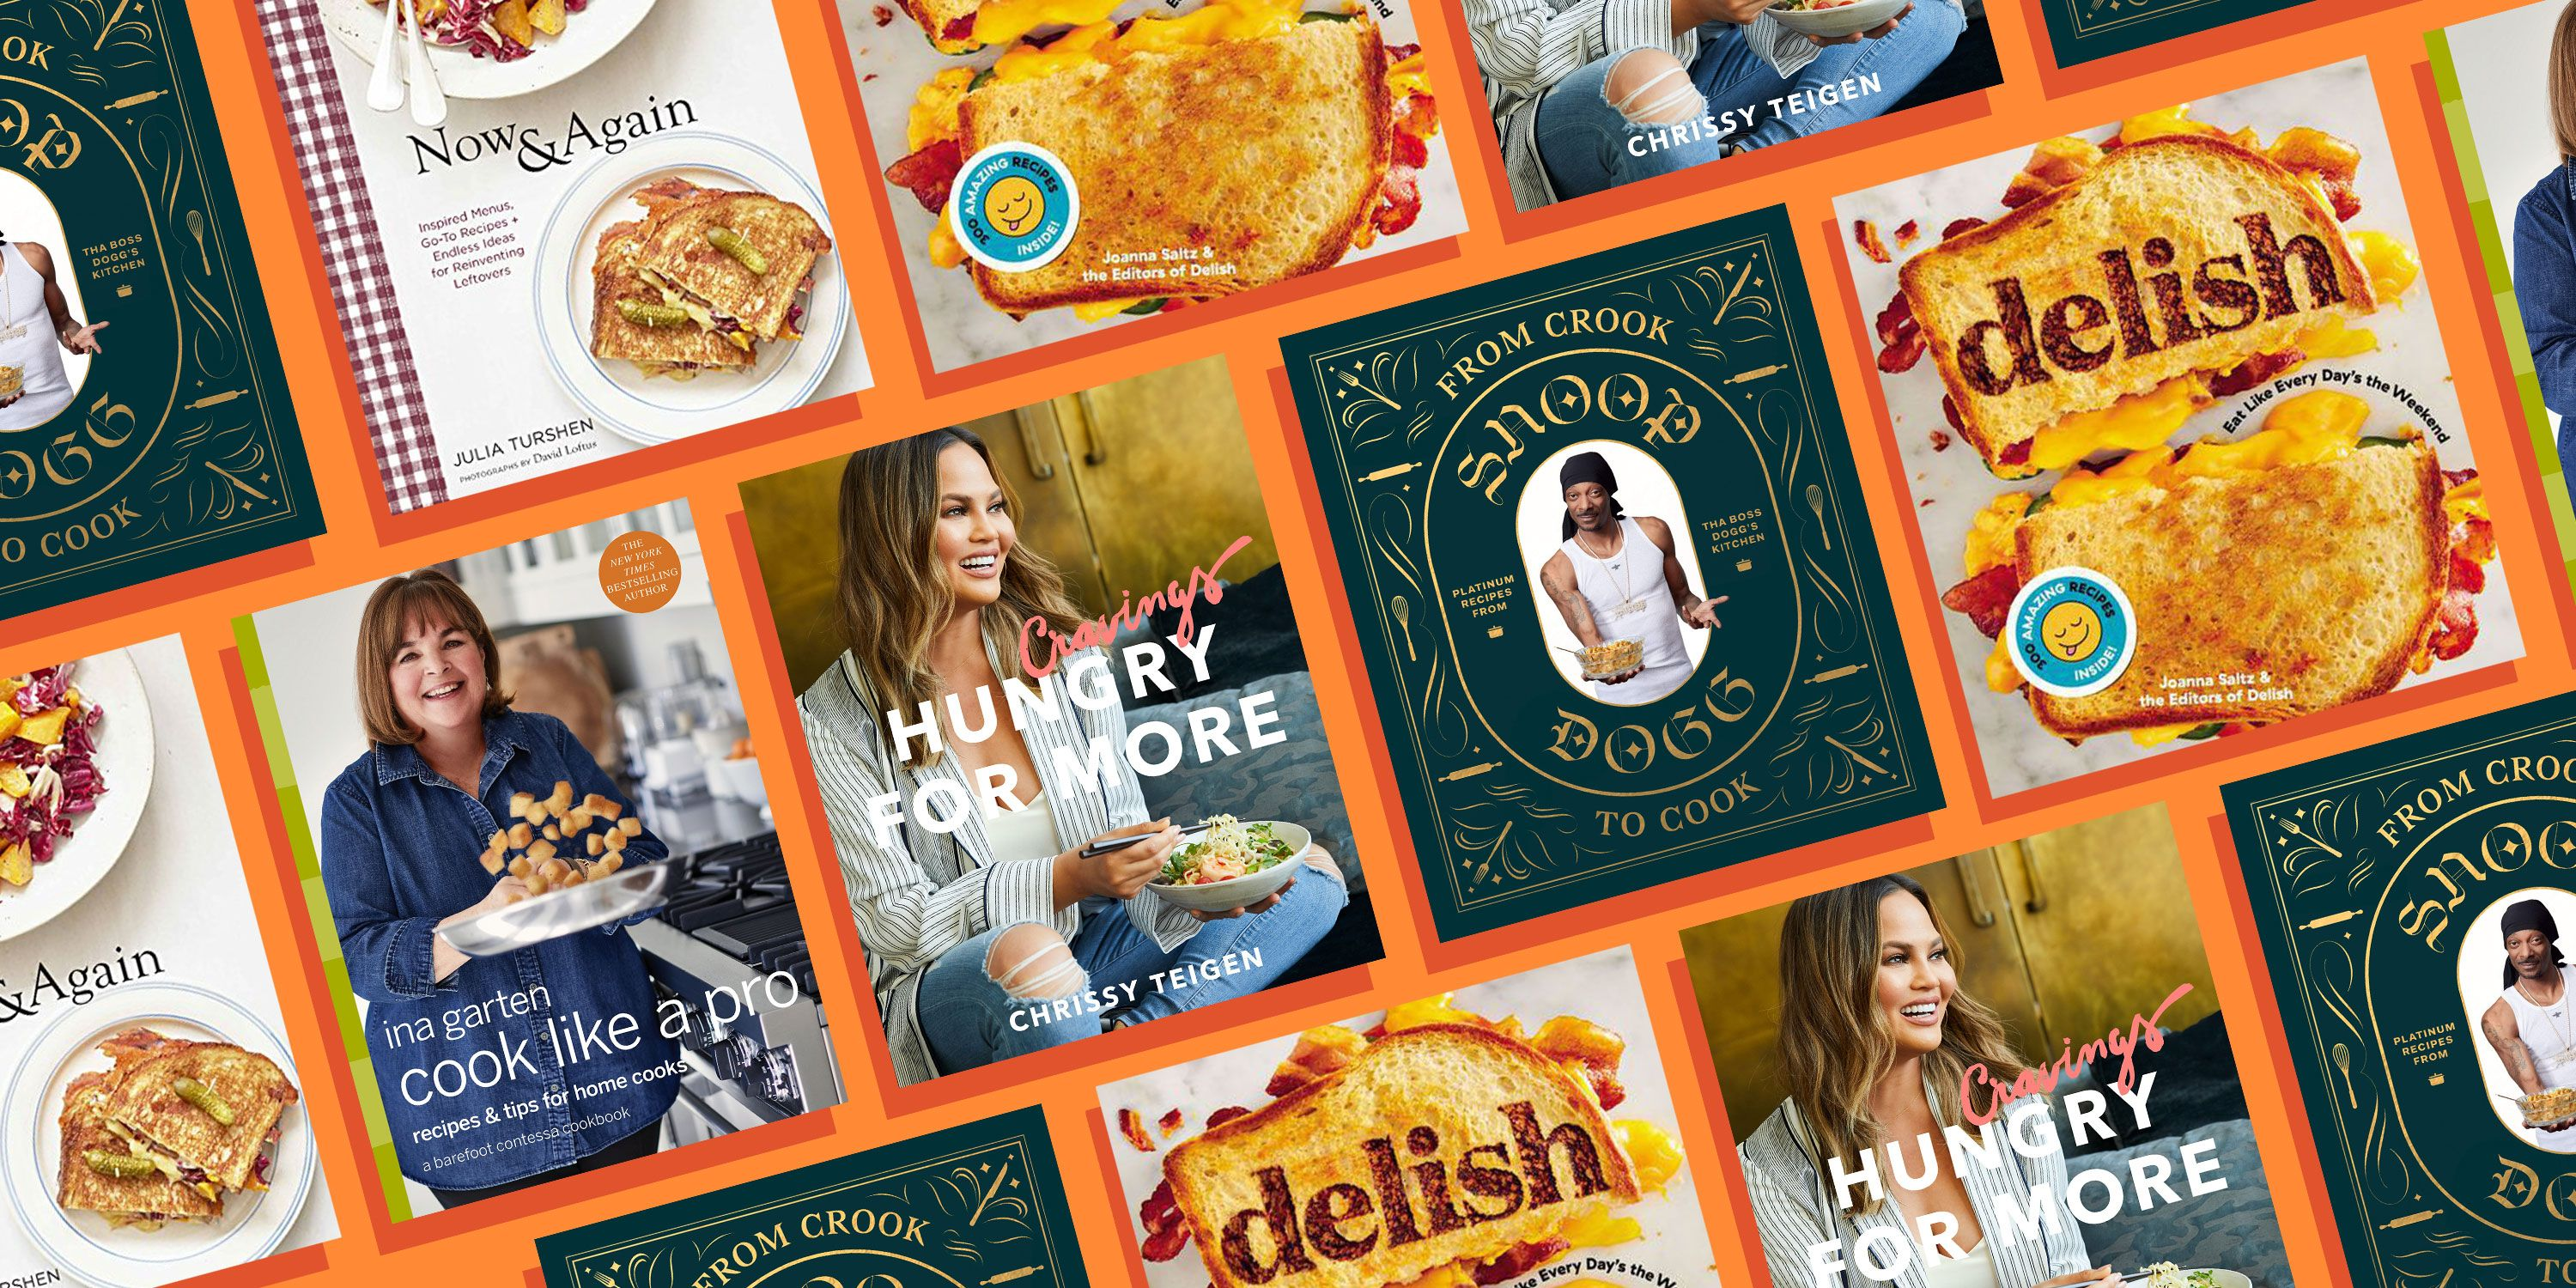 The 21 Best Cookbooks Of 2018 - Most Anticipated Cookbooks of the Year